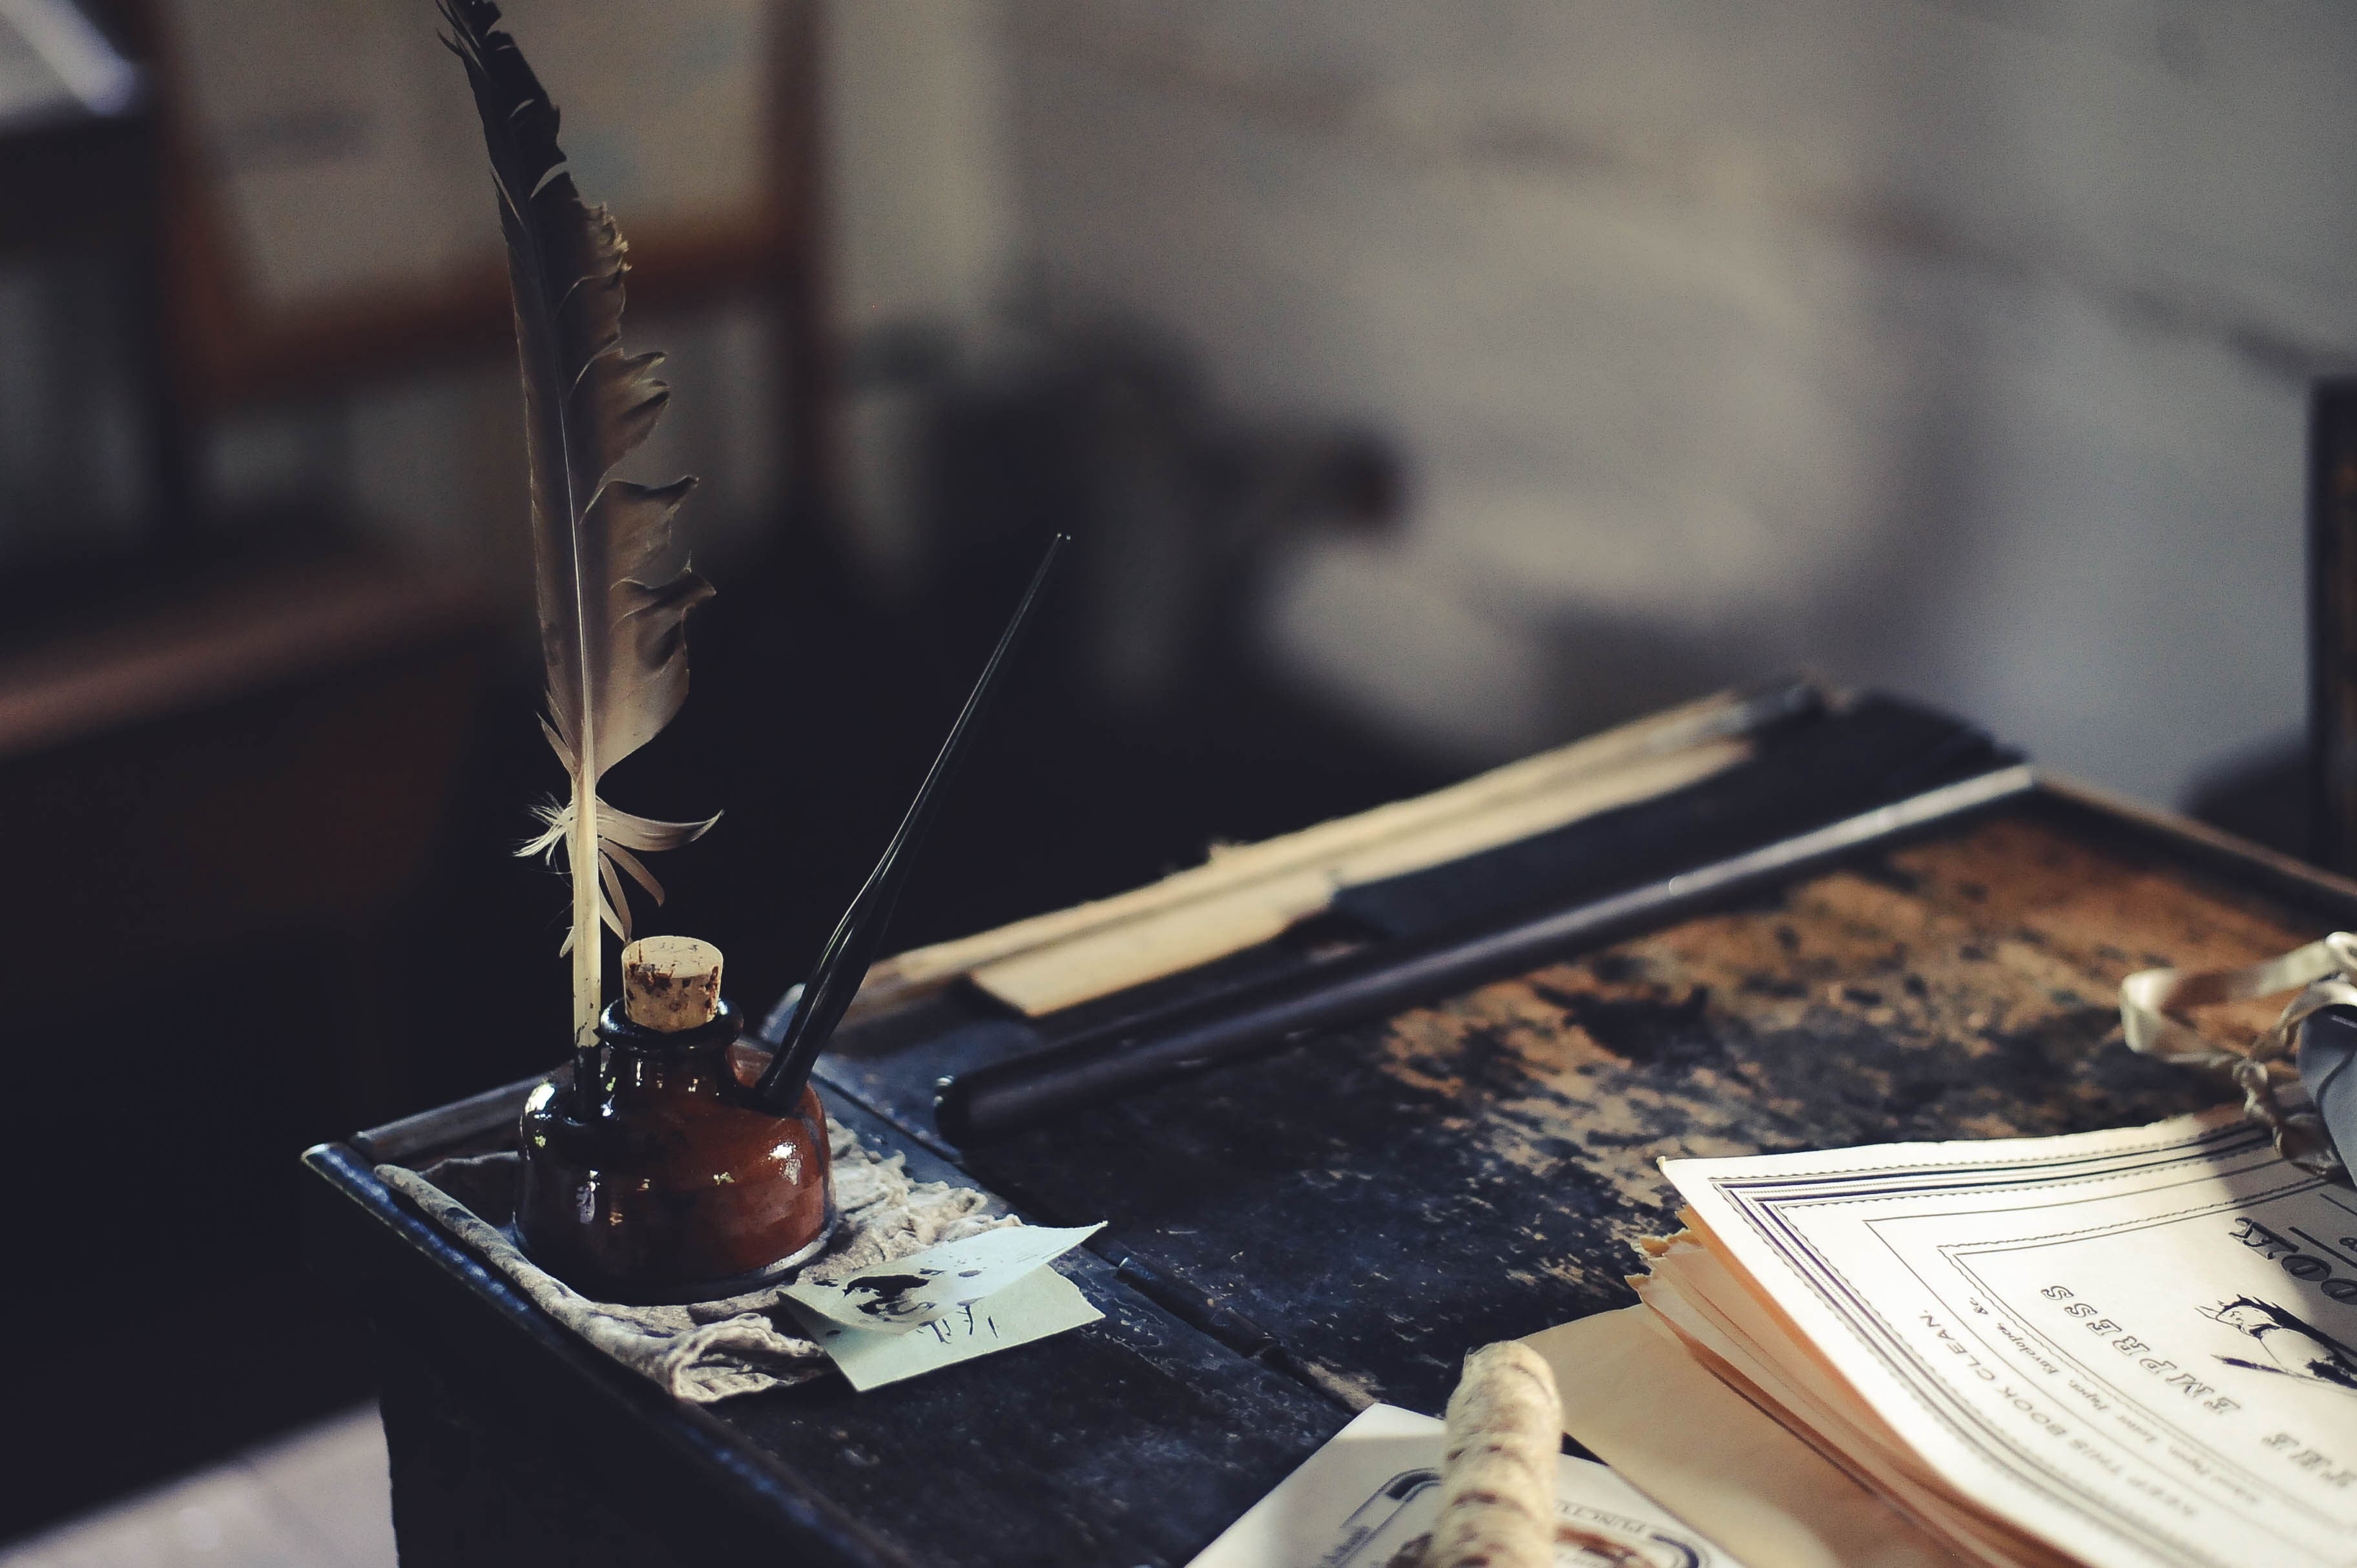 Old fashioned ink blotter and quill on the corner of an old desk with papers.